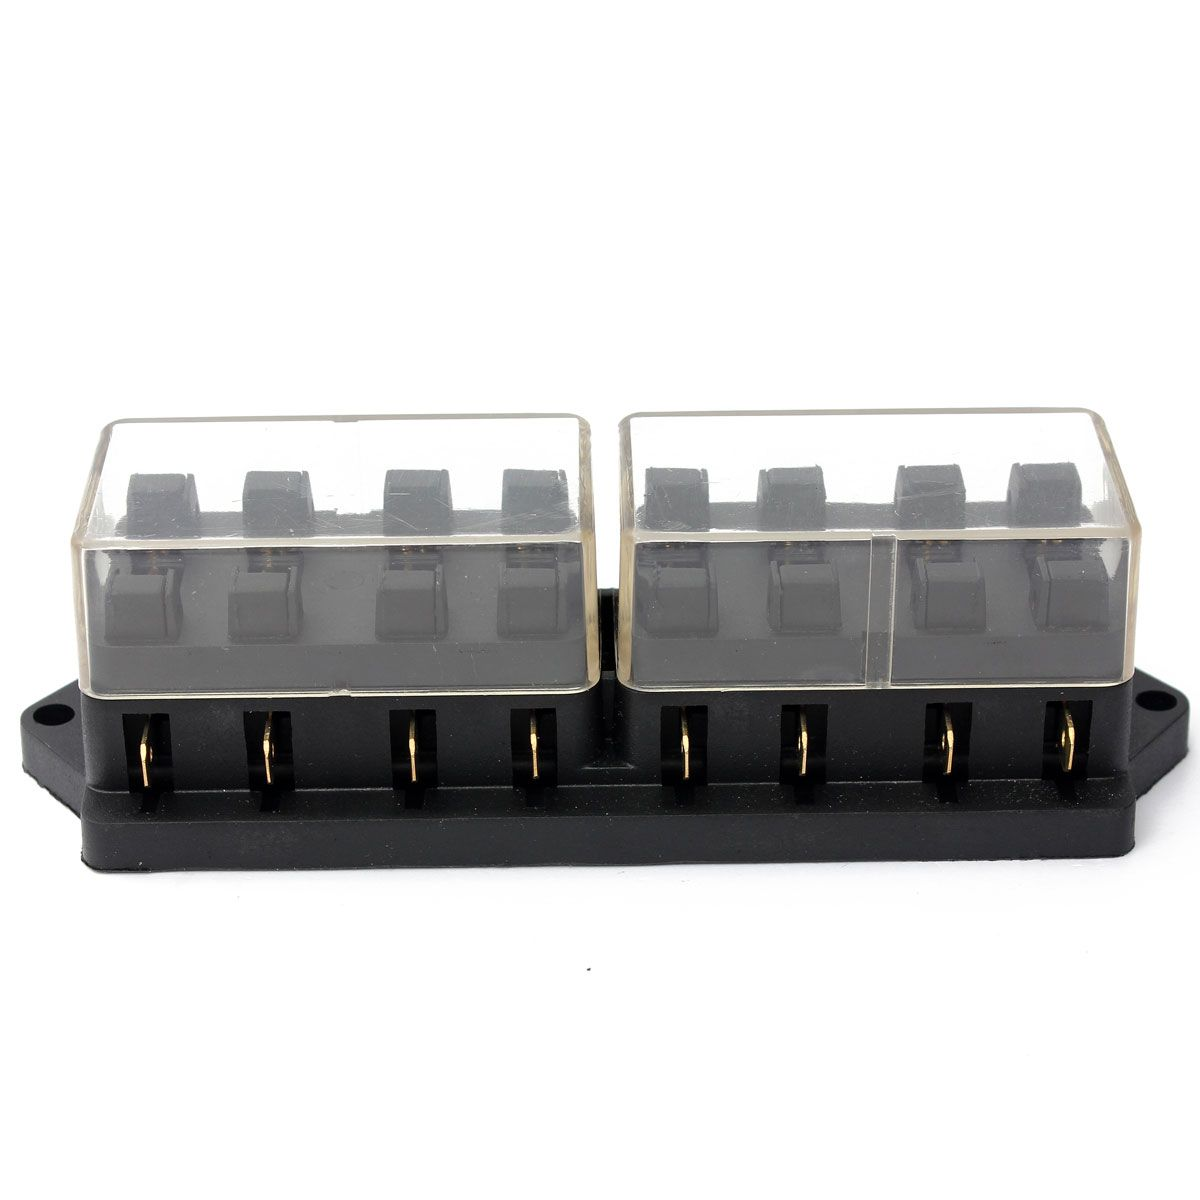 Universal 12V 8Way Car Truck Automotive Blade Fuse Box Holder Circuit With Cover